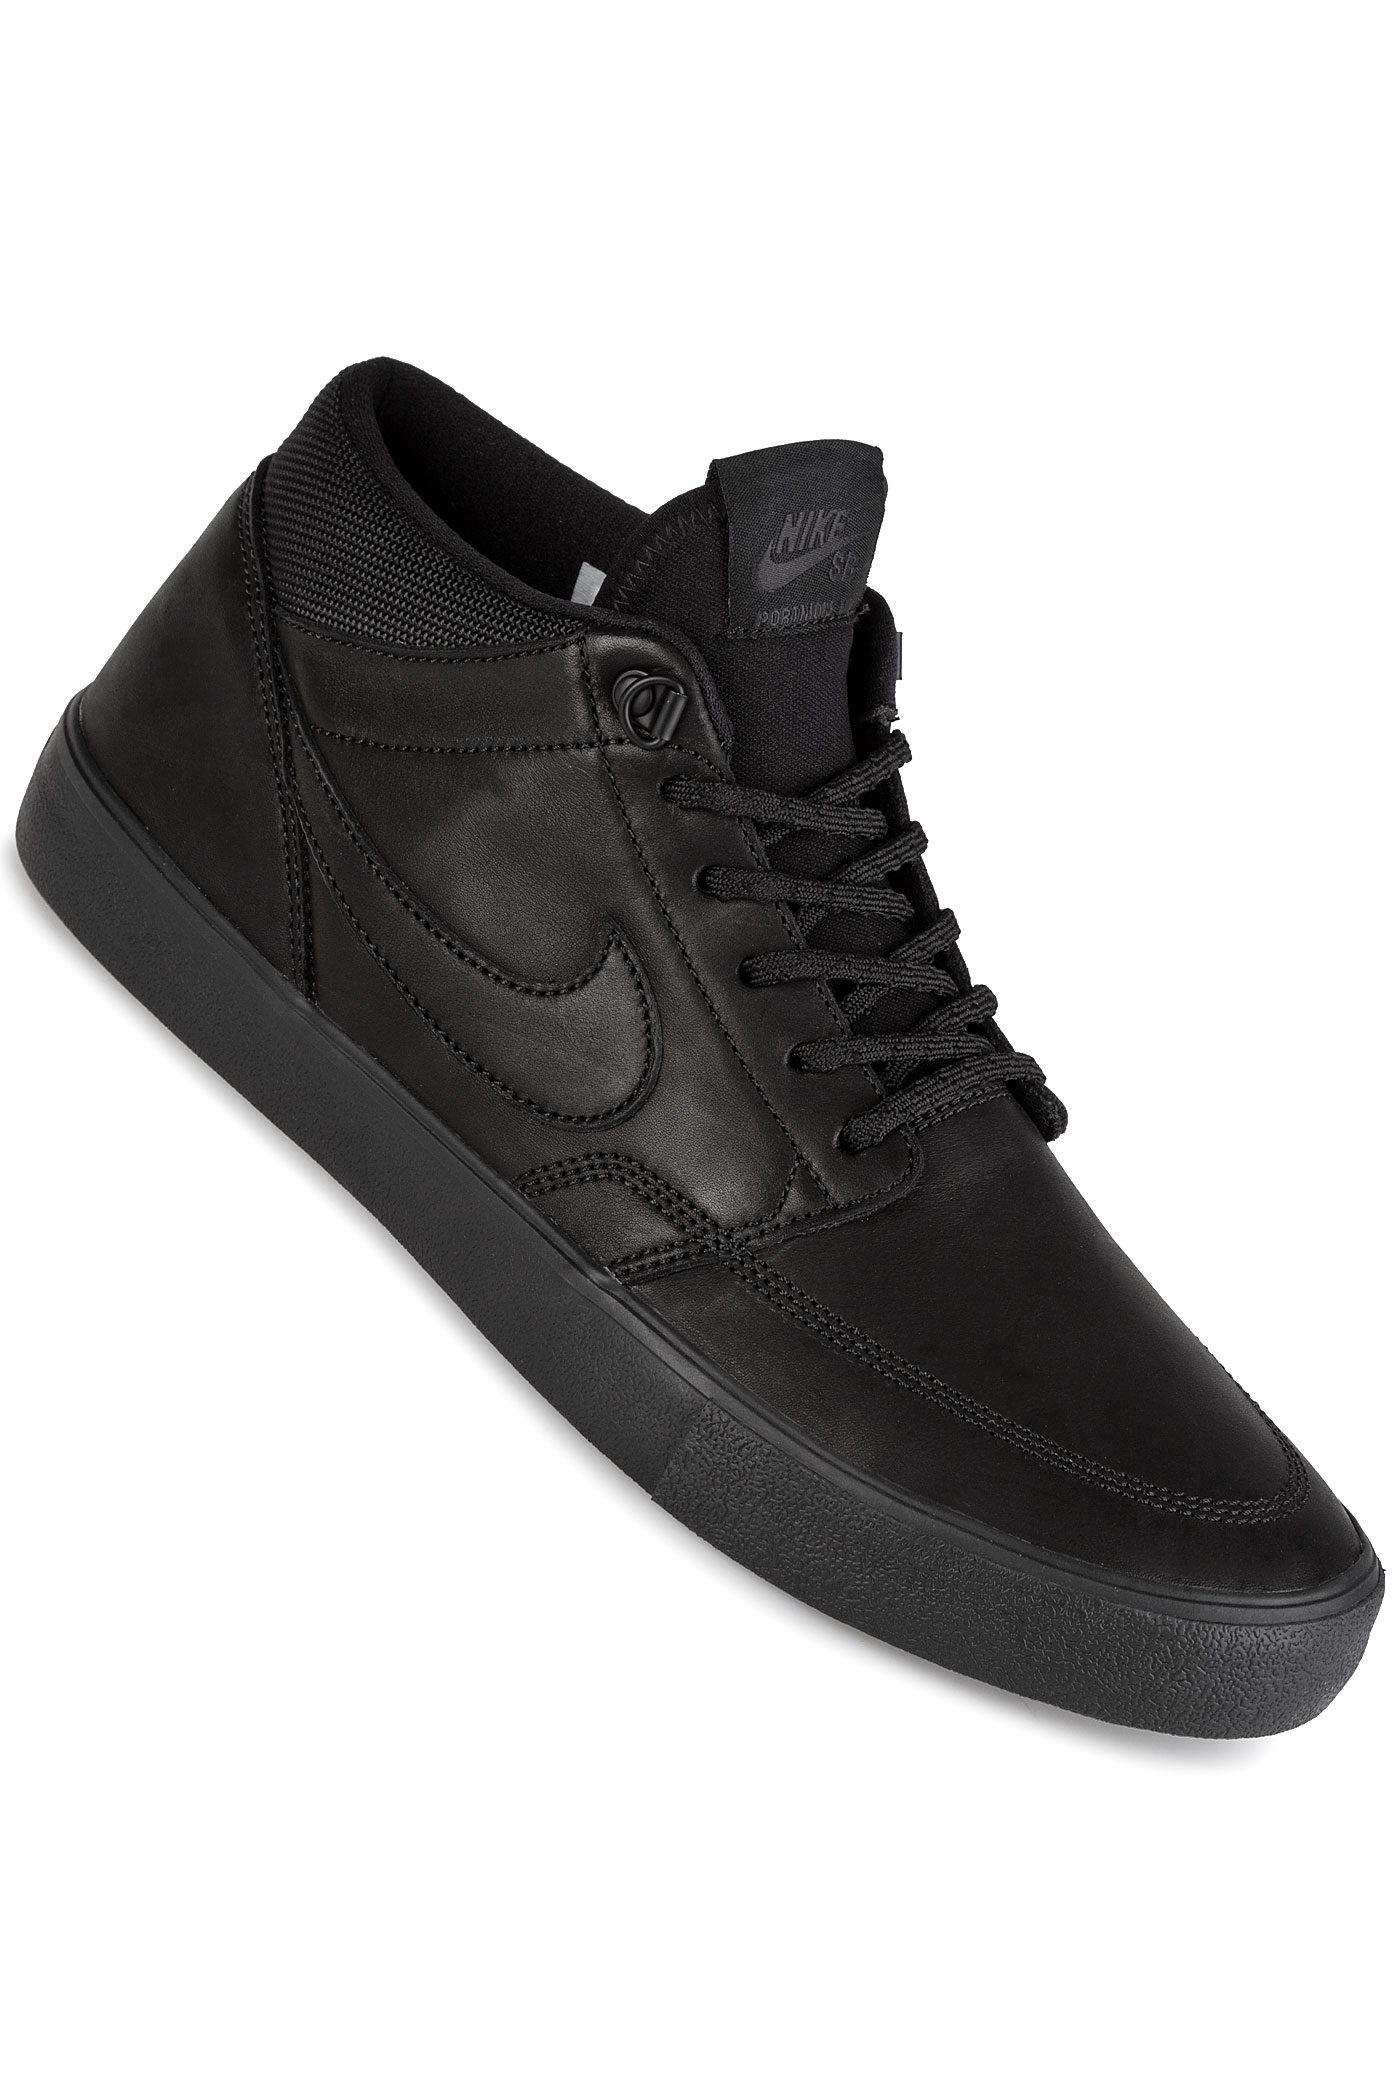 nike sb solarsoft portmore ii mid bota shoes black buy at skatedeluxe. Black Bedroom Furniture Sets. Home Design Ideas